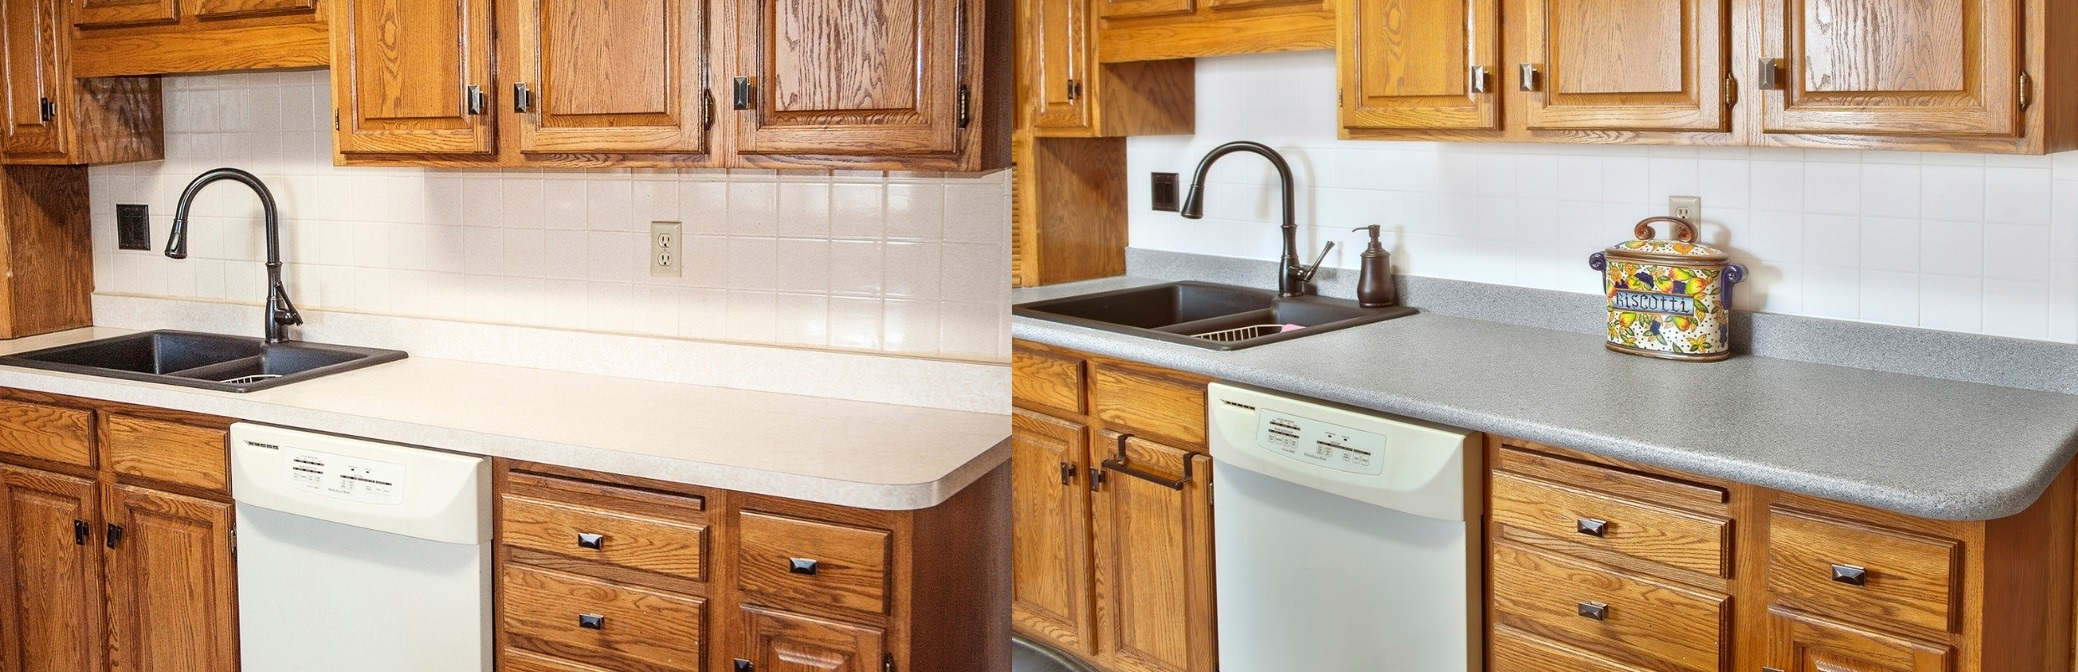 8 beautiful kitchen countertop transformations for Replace bathroom countertop